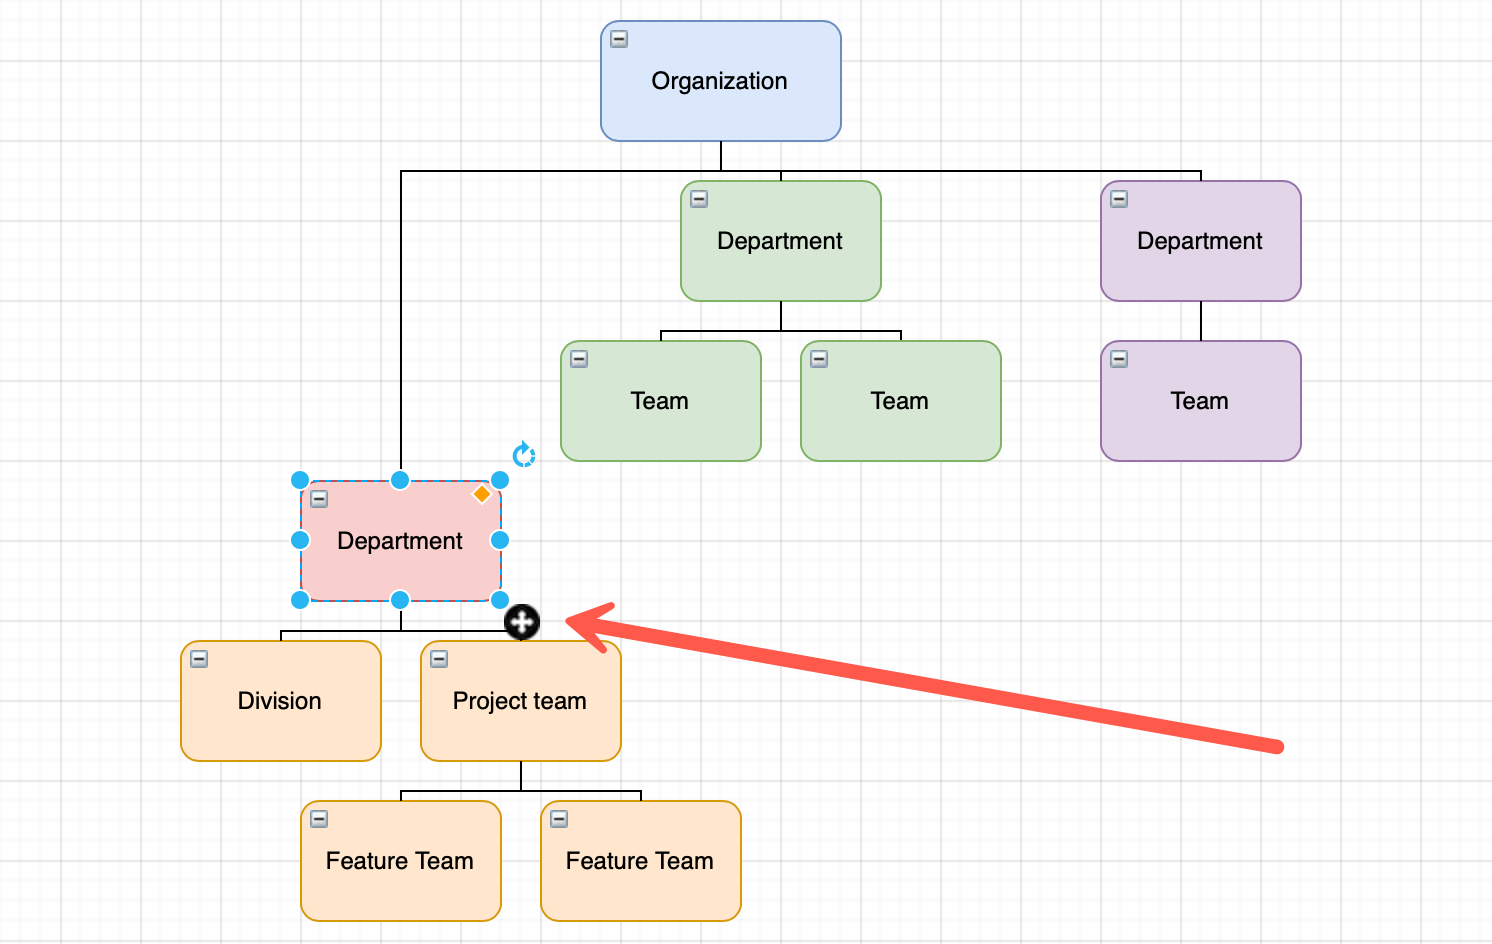 Move an entire branch in your org chart in diagrams.net